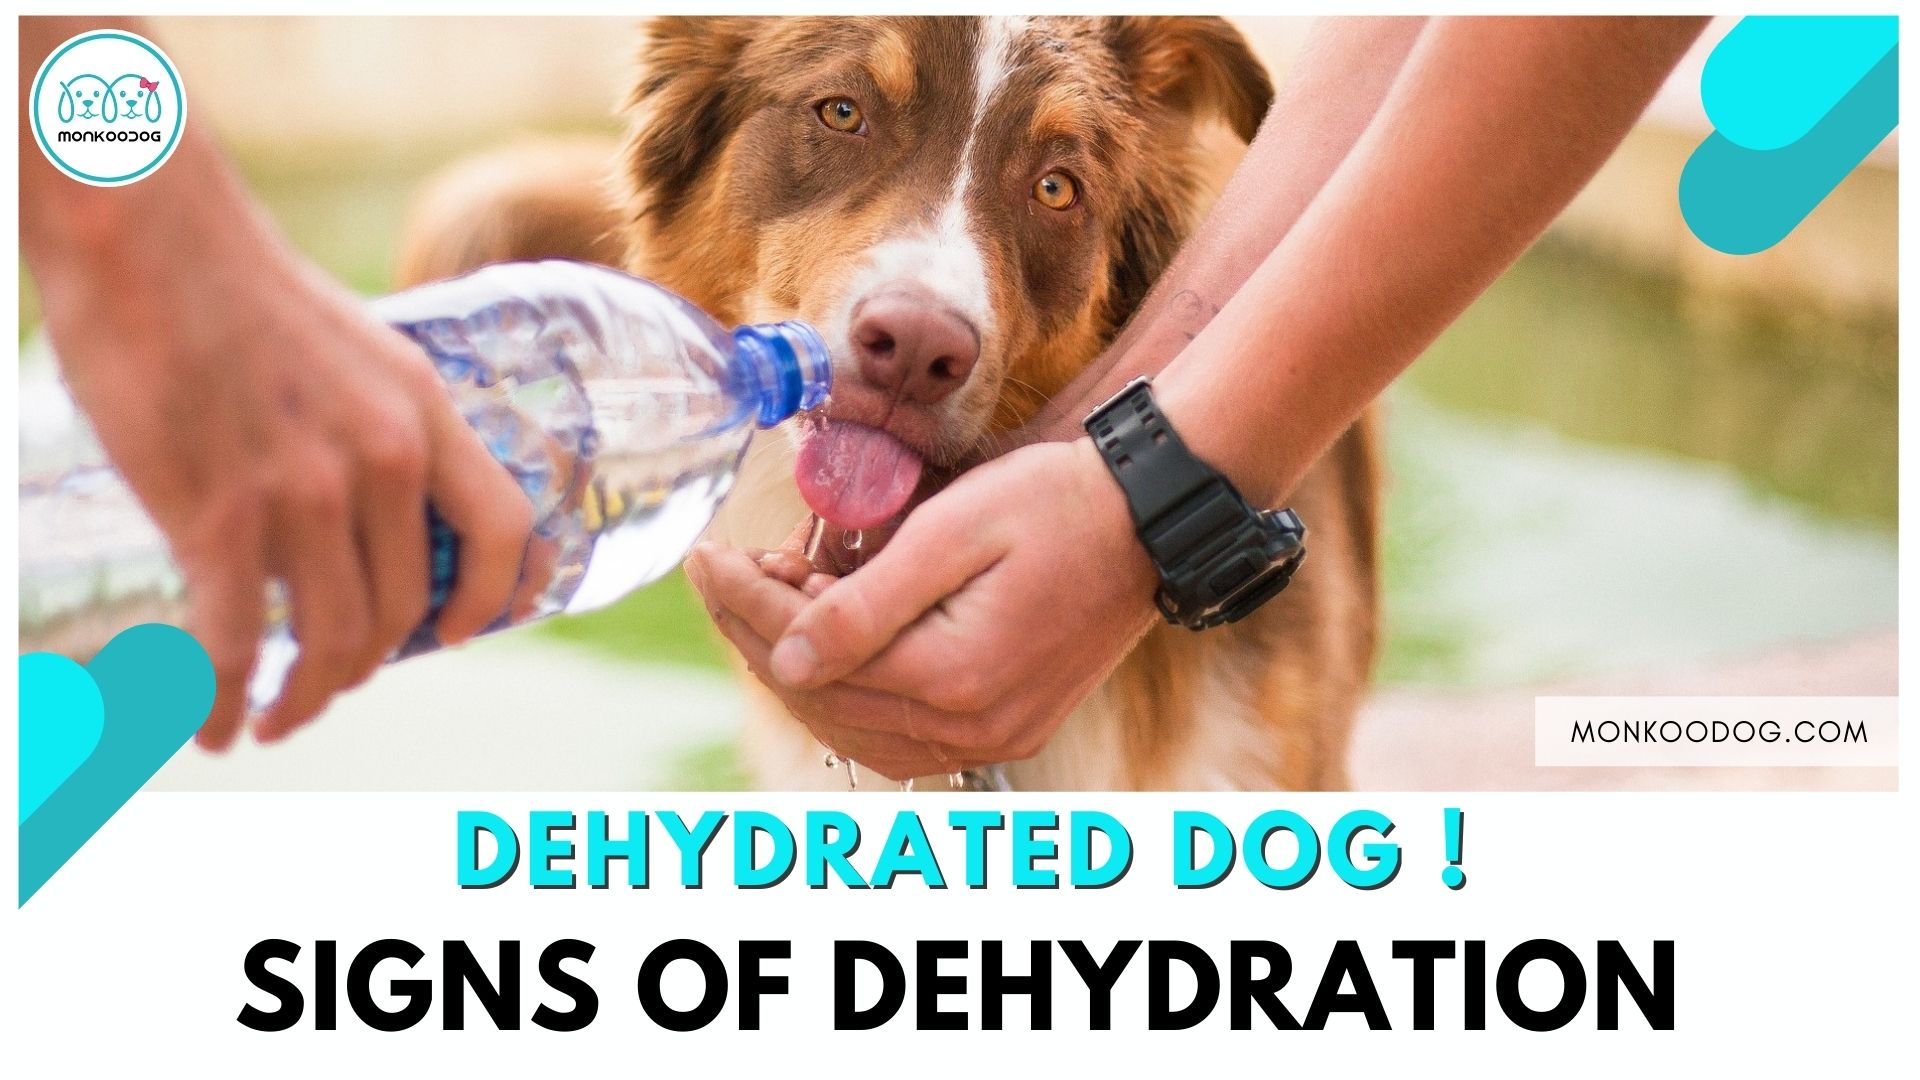 10 Signs To Recognize Dehydration In Dogs